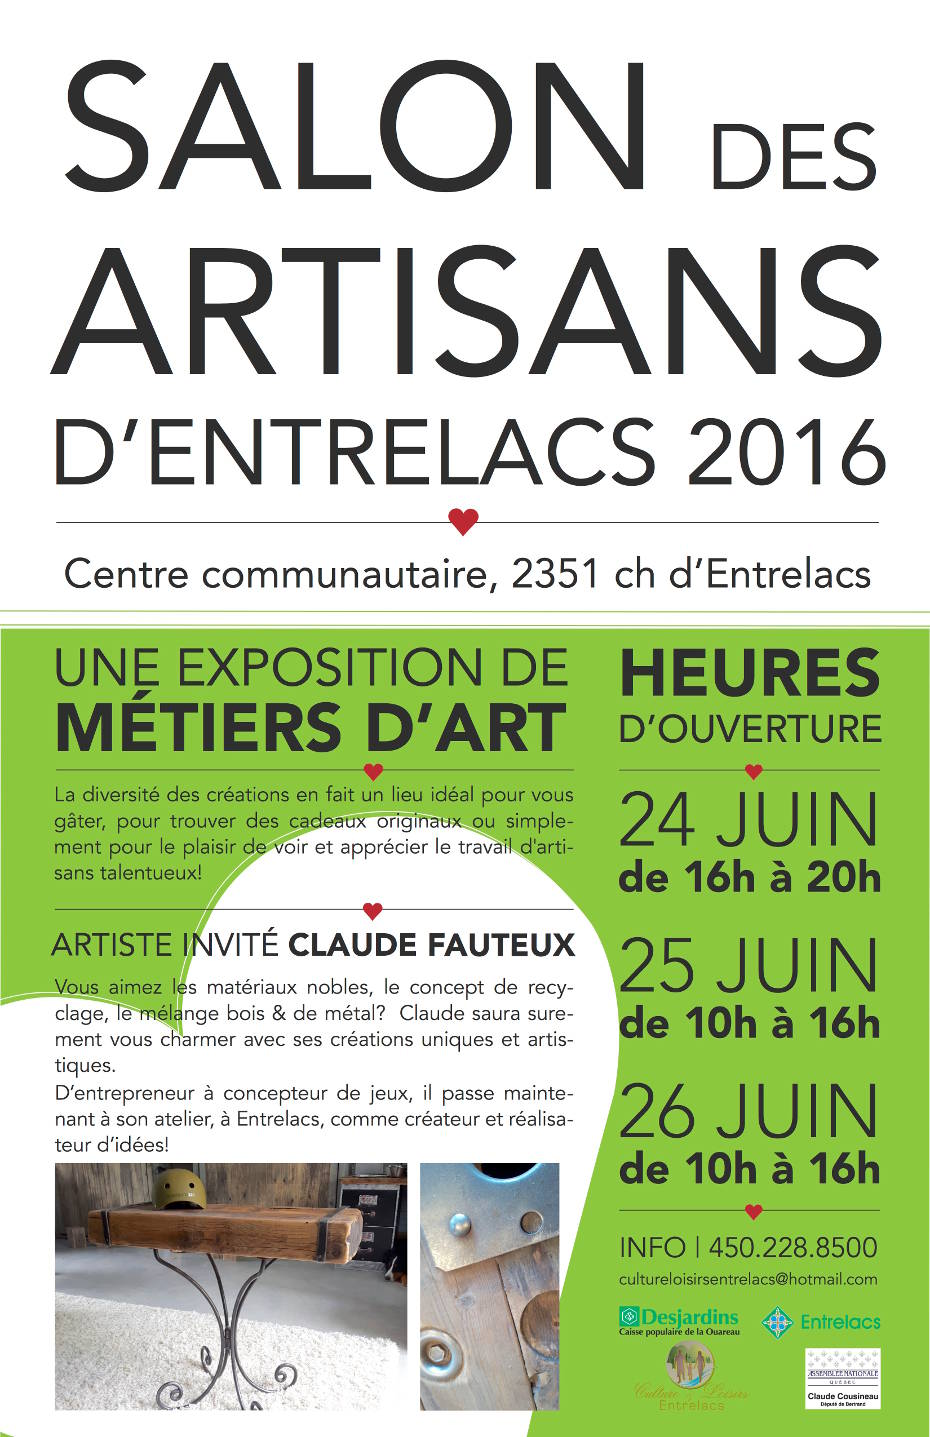 Salon des artisans municipalit d 39 entrelacs for Salon artisanal